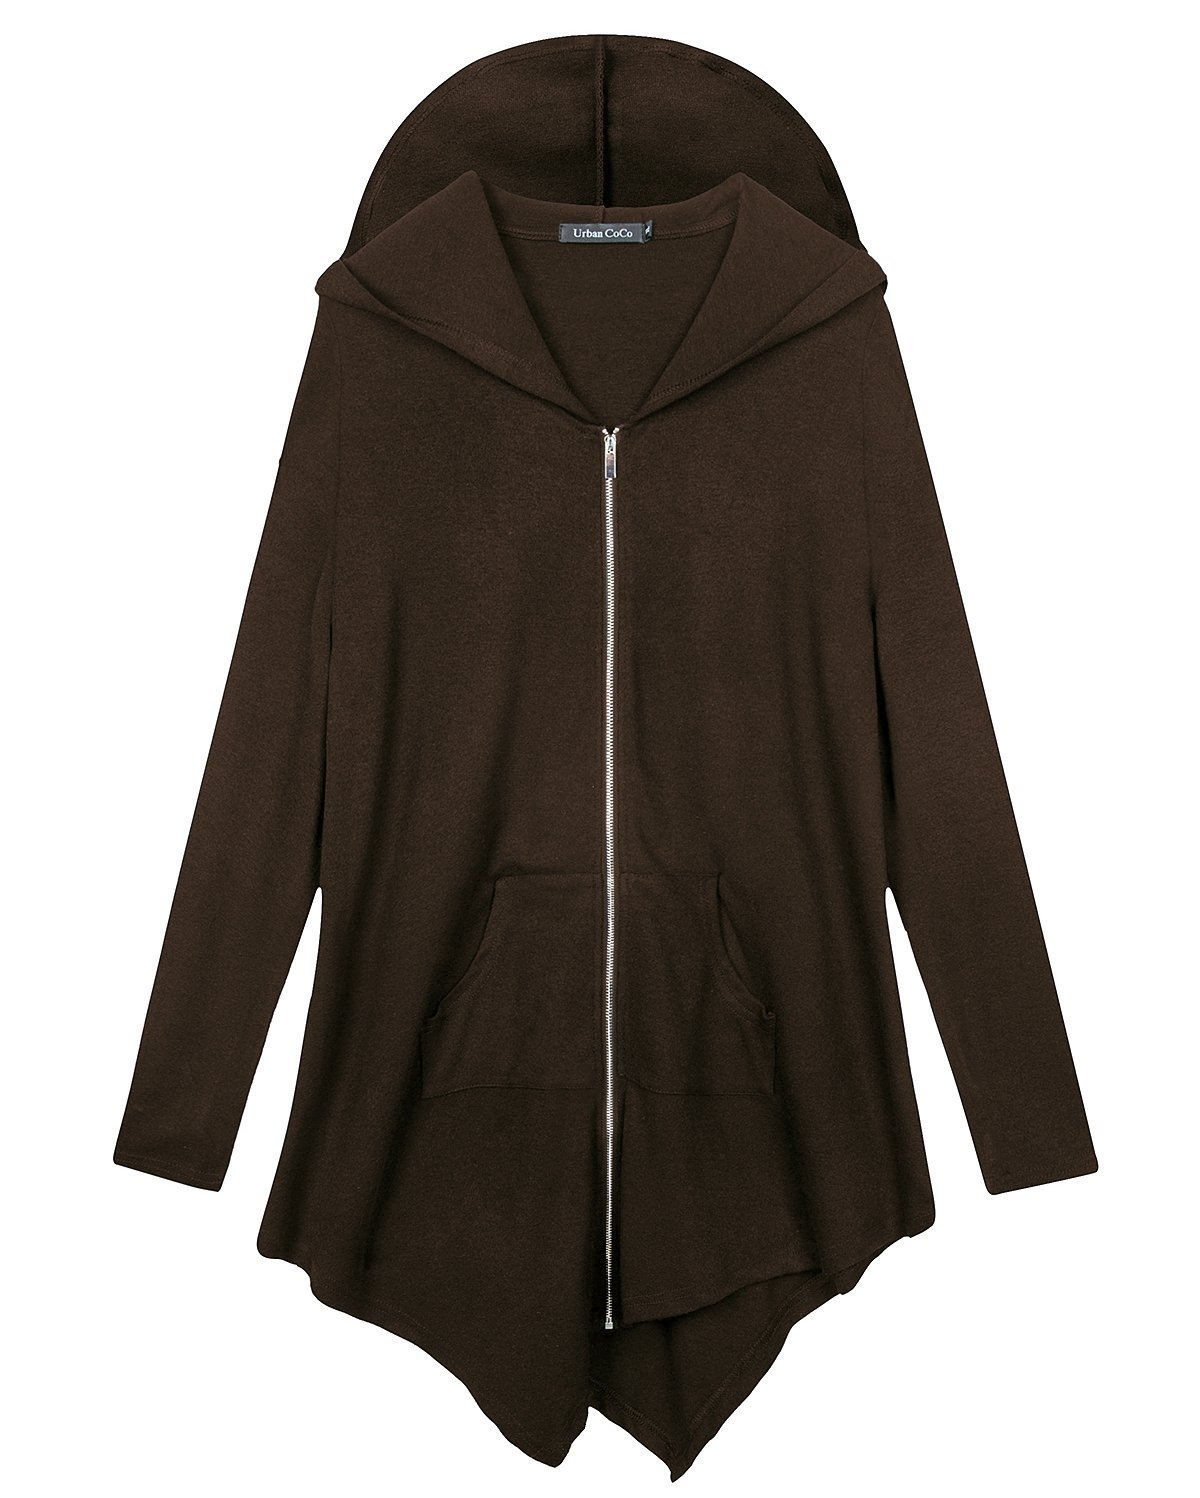 Urban CoCo Women's Pluse Size Hooded Sweatshirt Jacket Cape Style (XL, Brown) by Urban CoCo